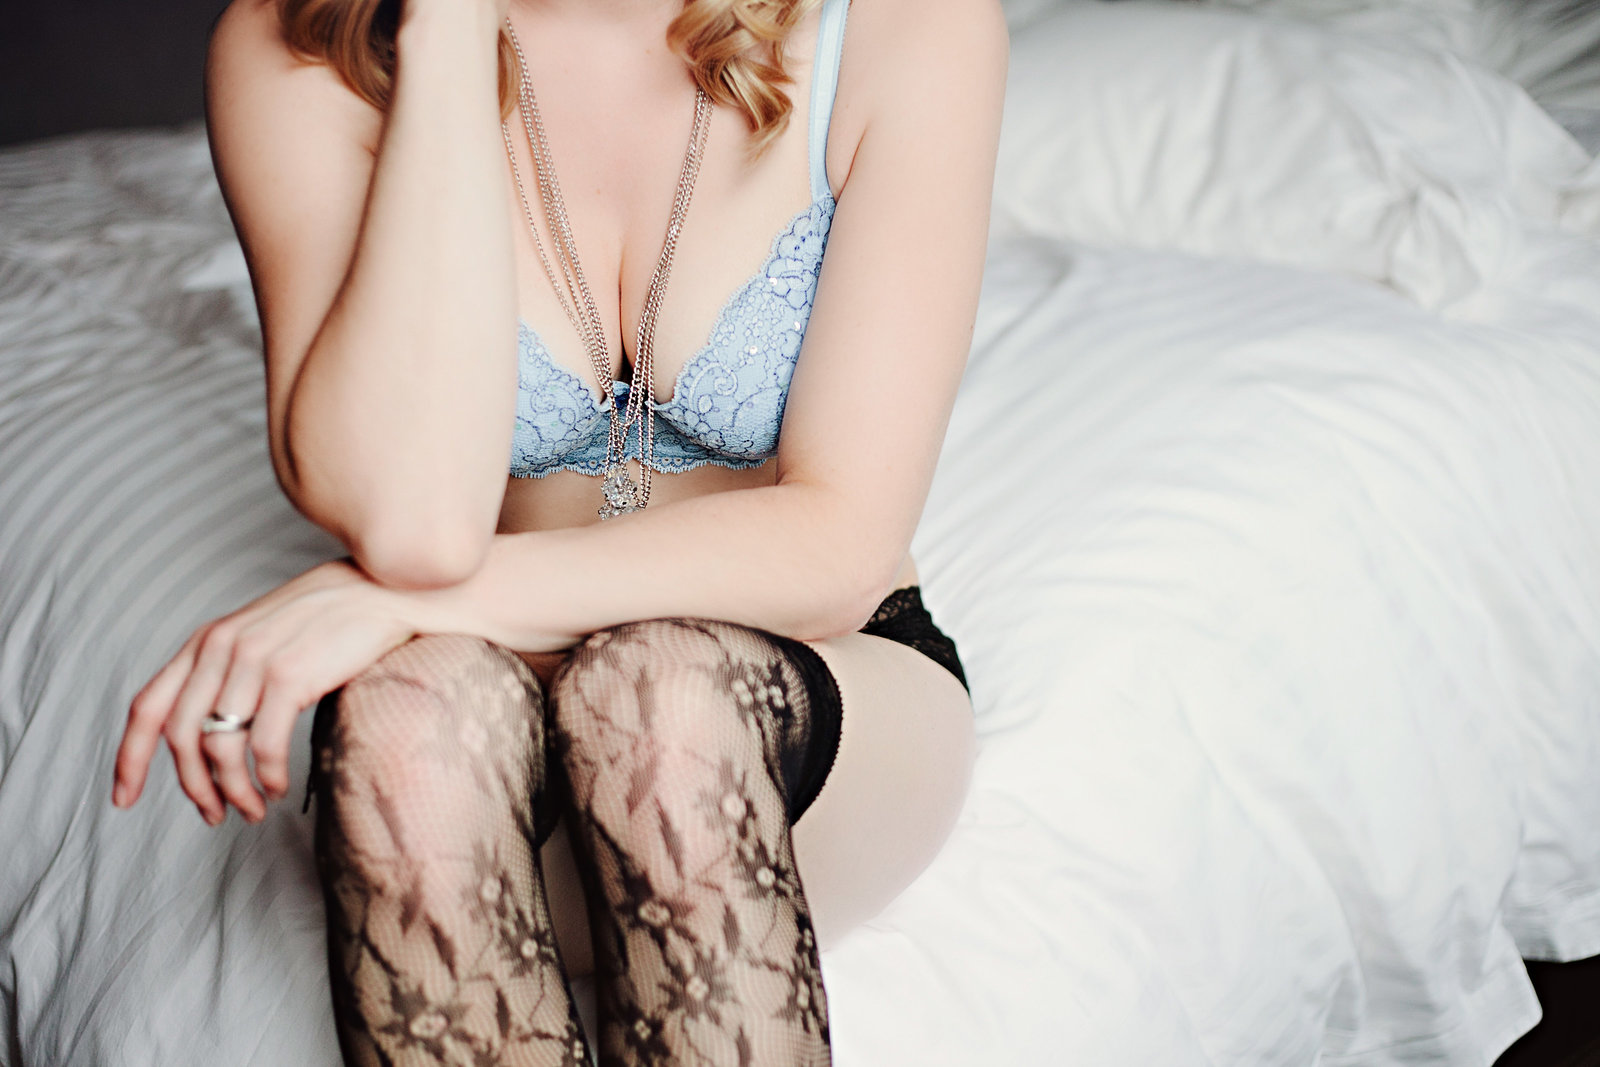 Missoula MT Boudoir Photos Sitting in mix and match lingerie